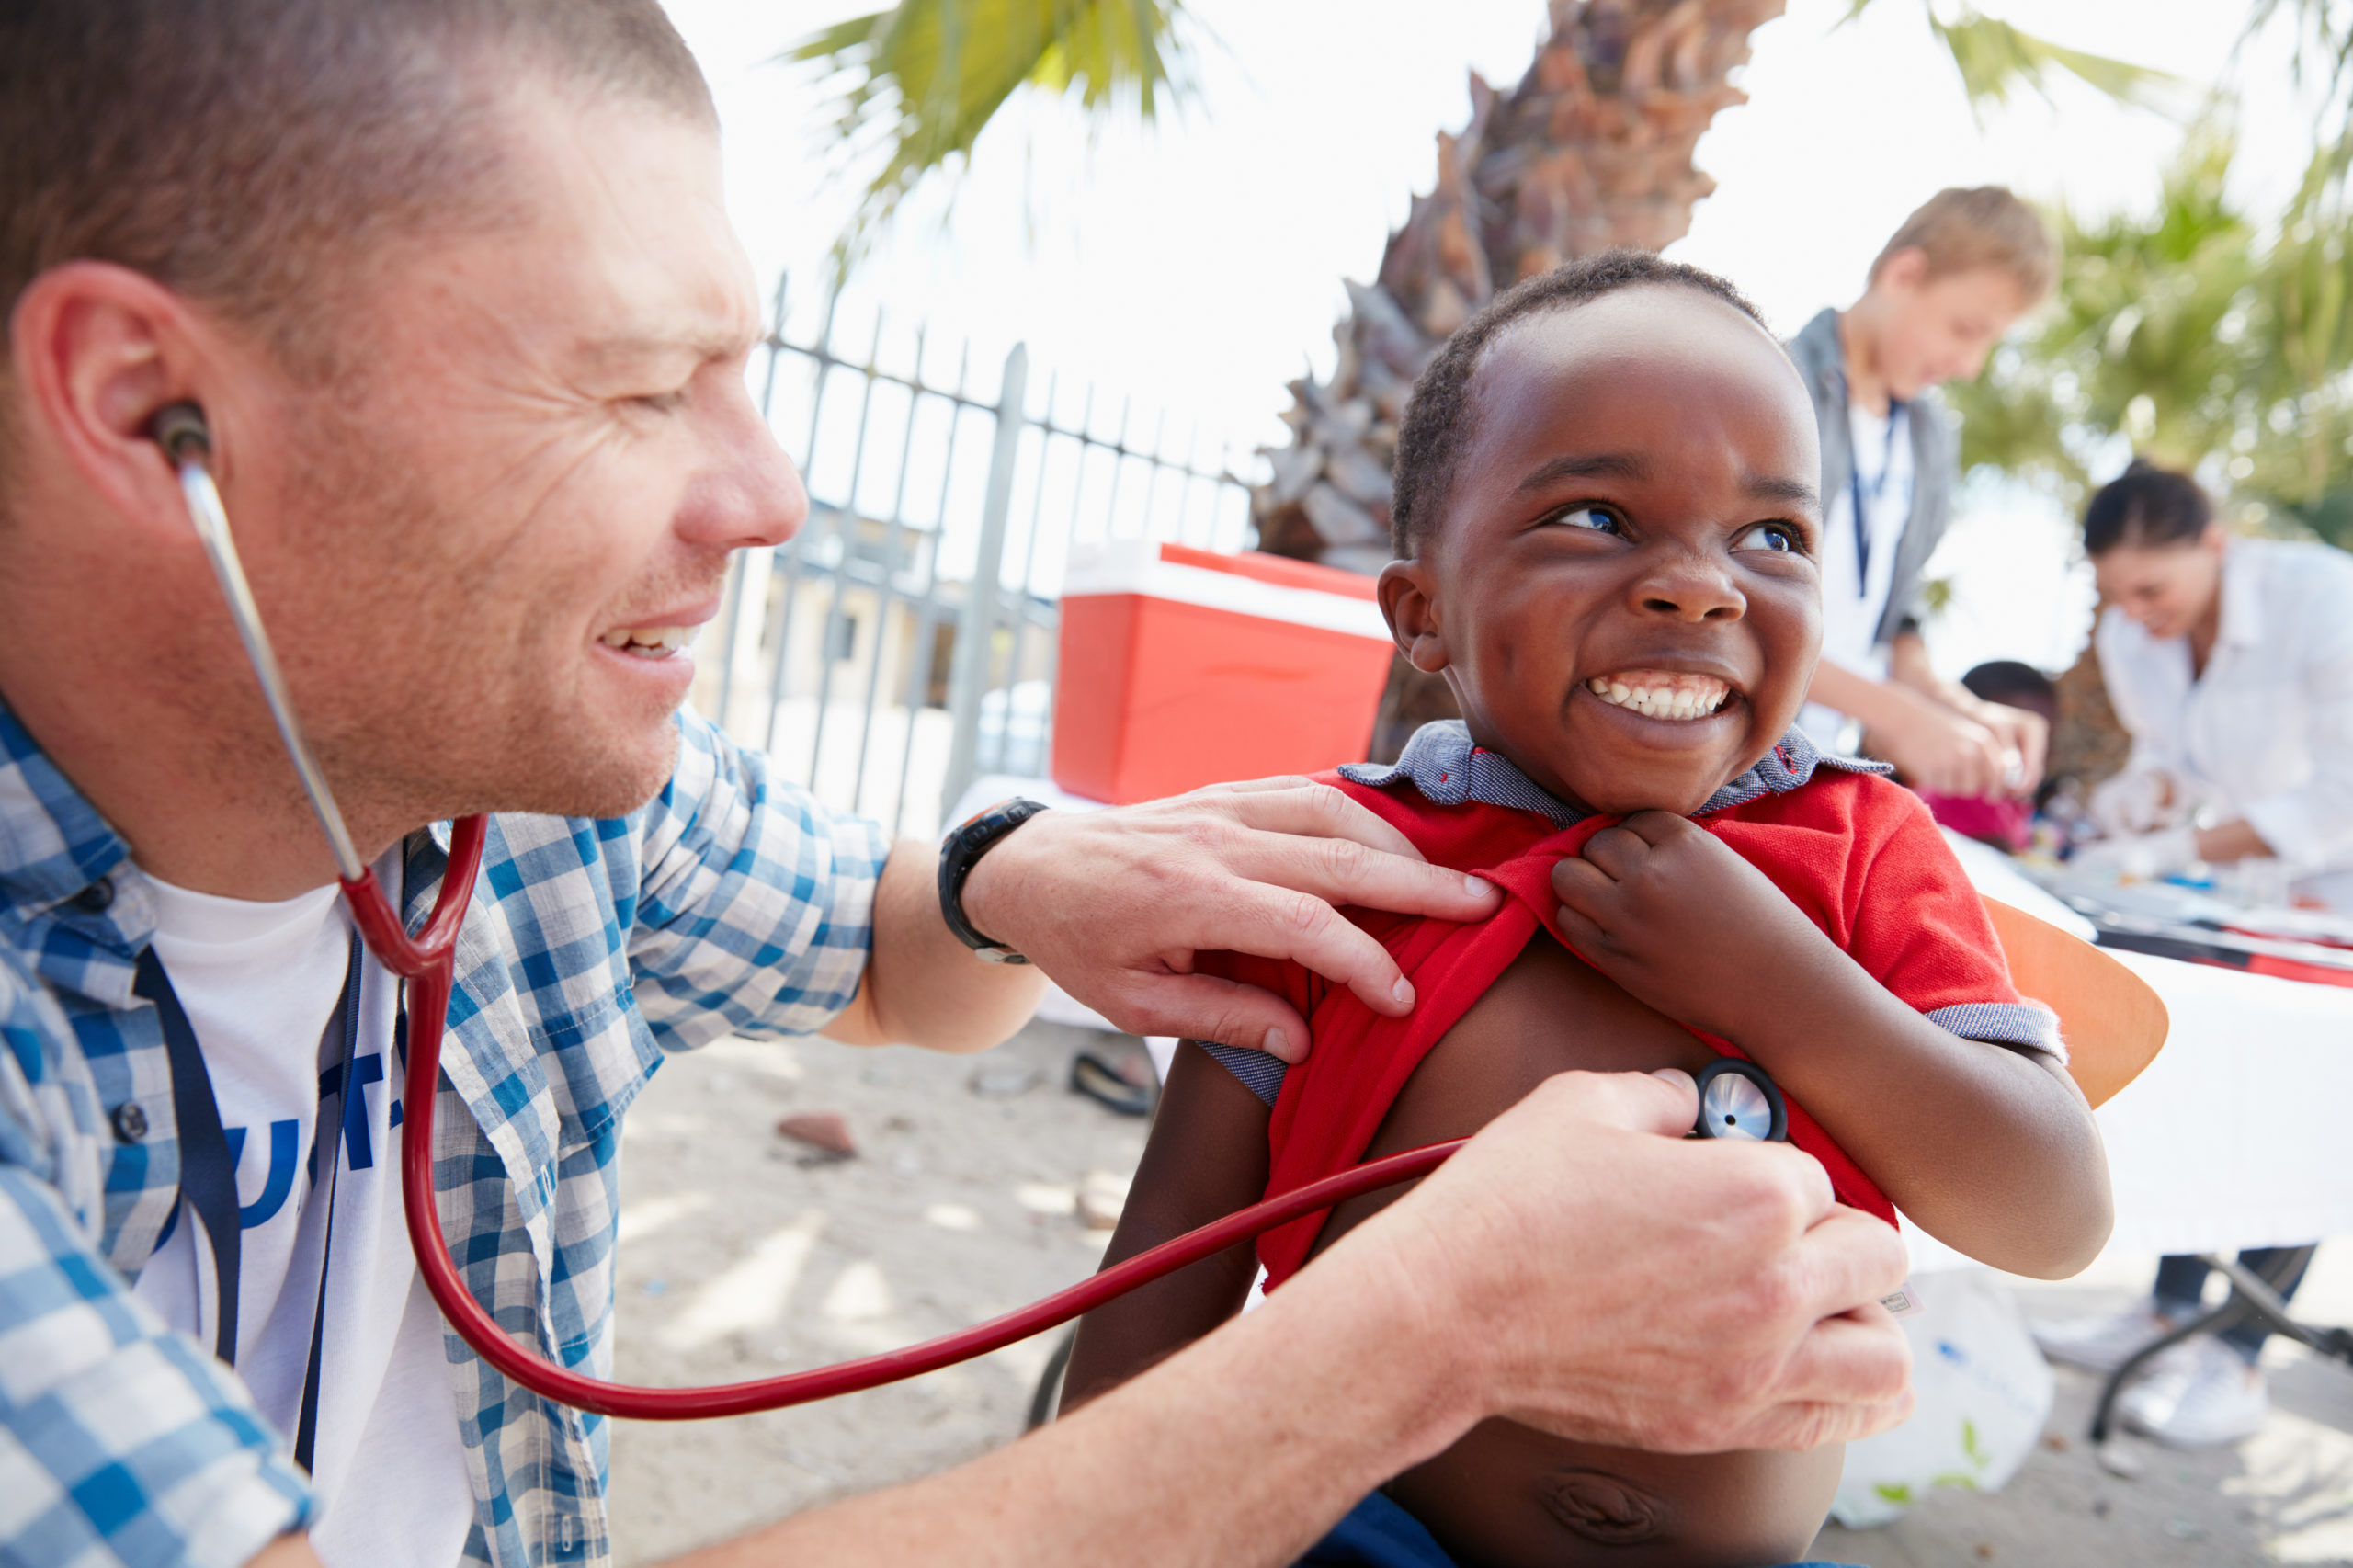 Shot of a volunteer doctor giving checkups to kids